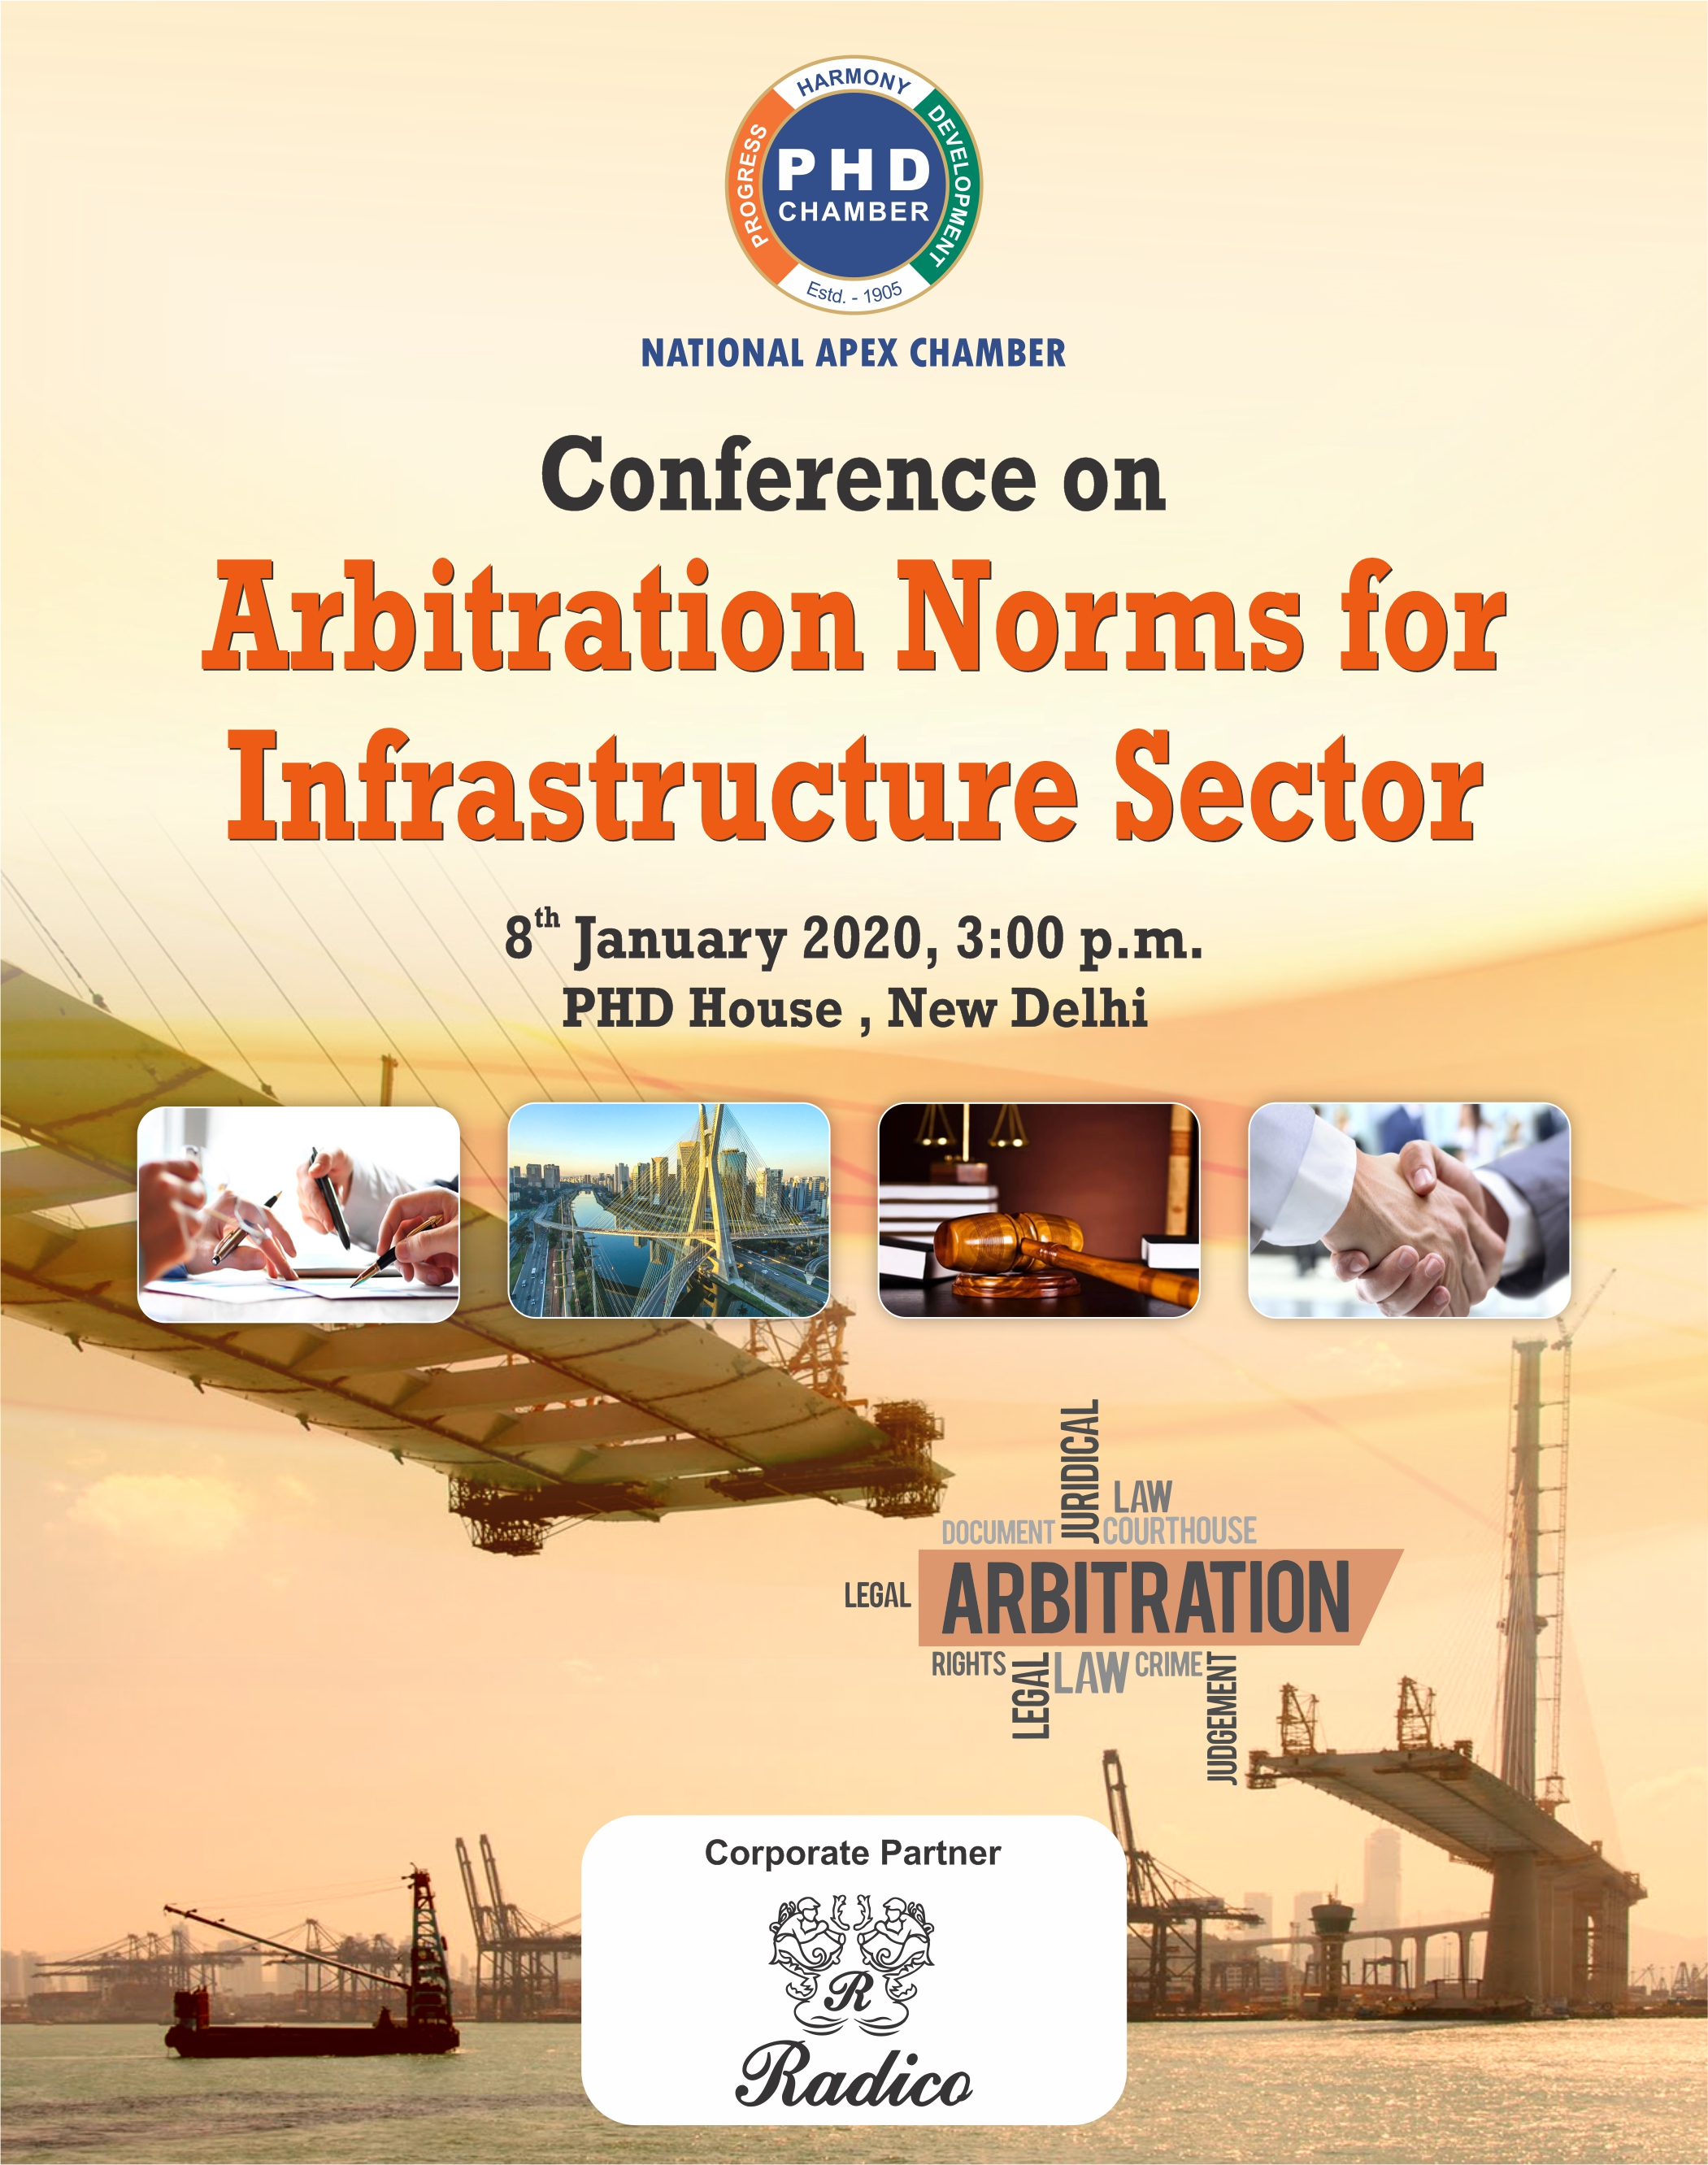 Conference on Arbitration Norms for Infrastructure Sector